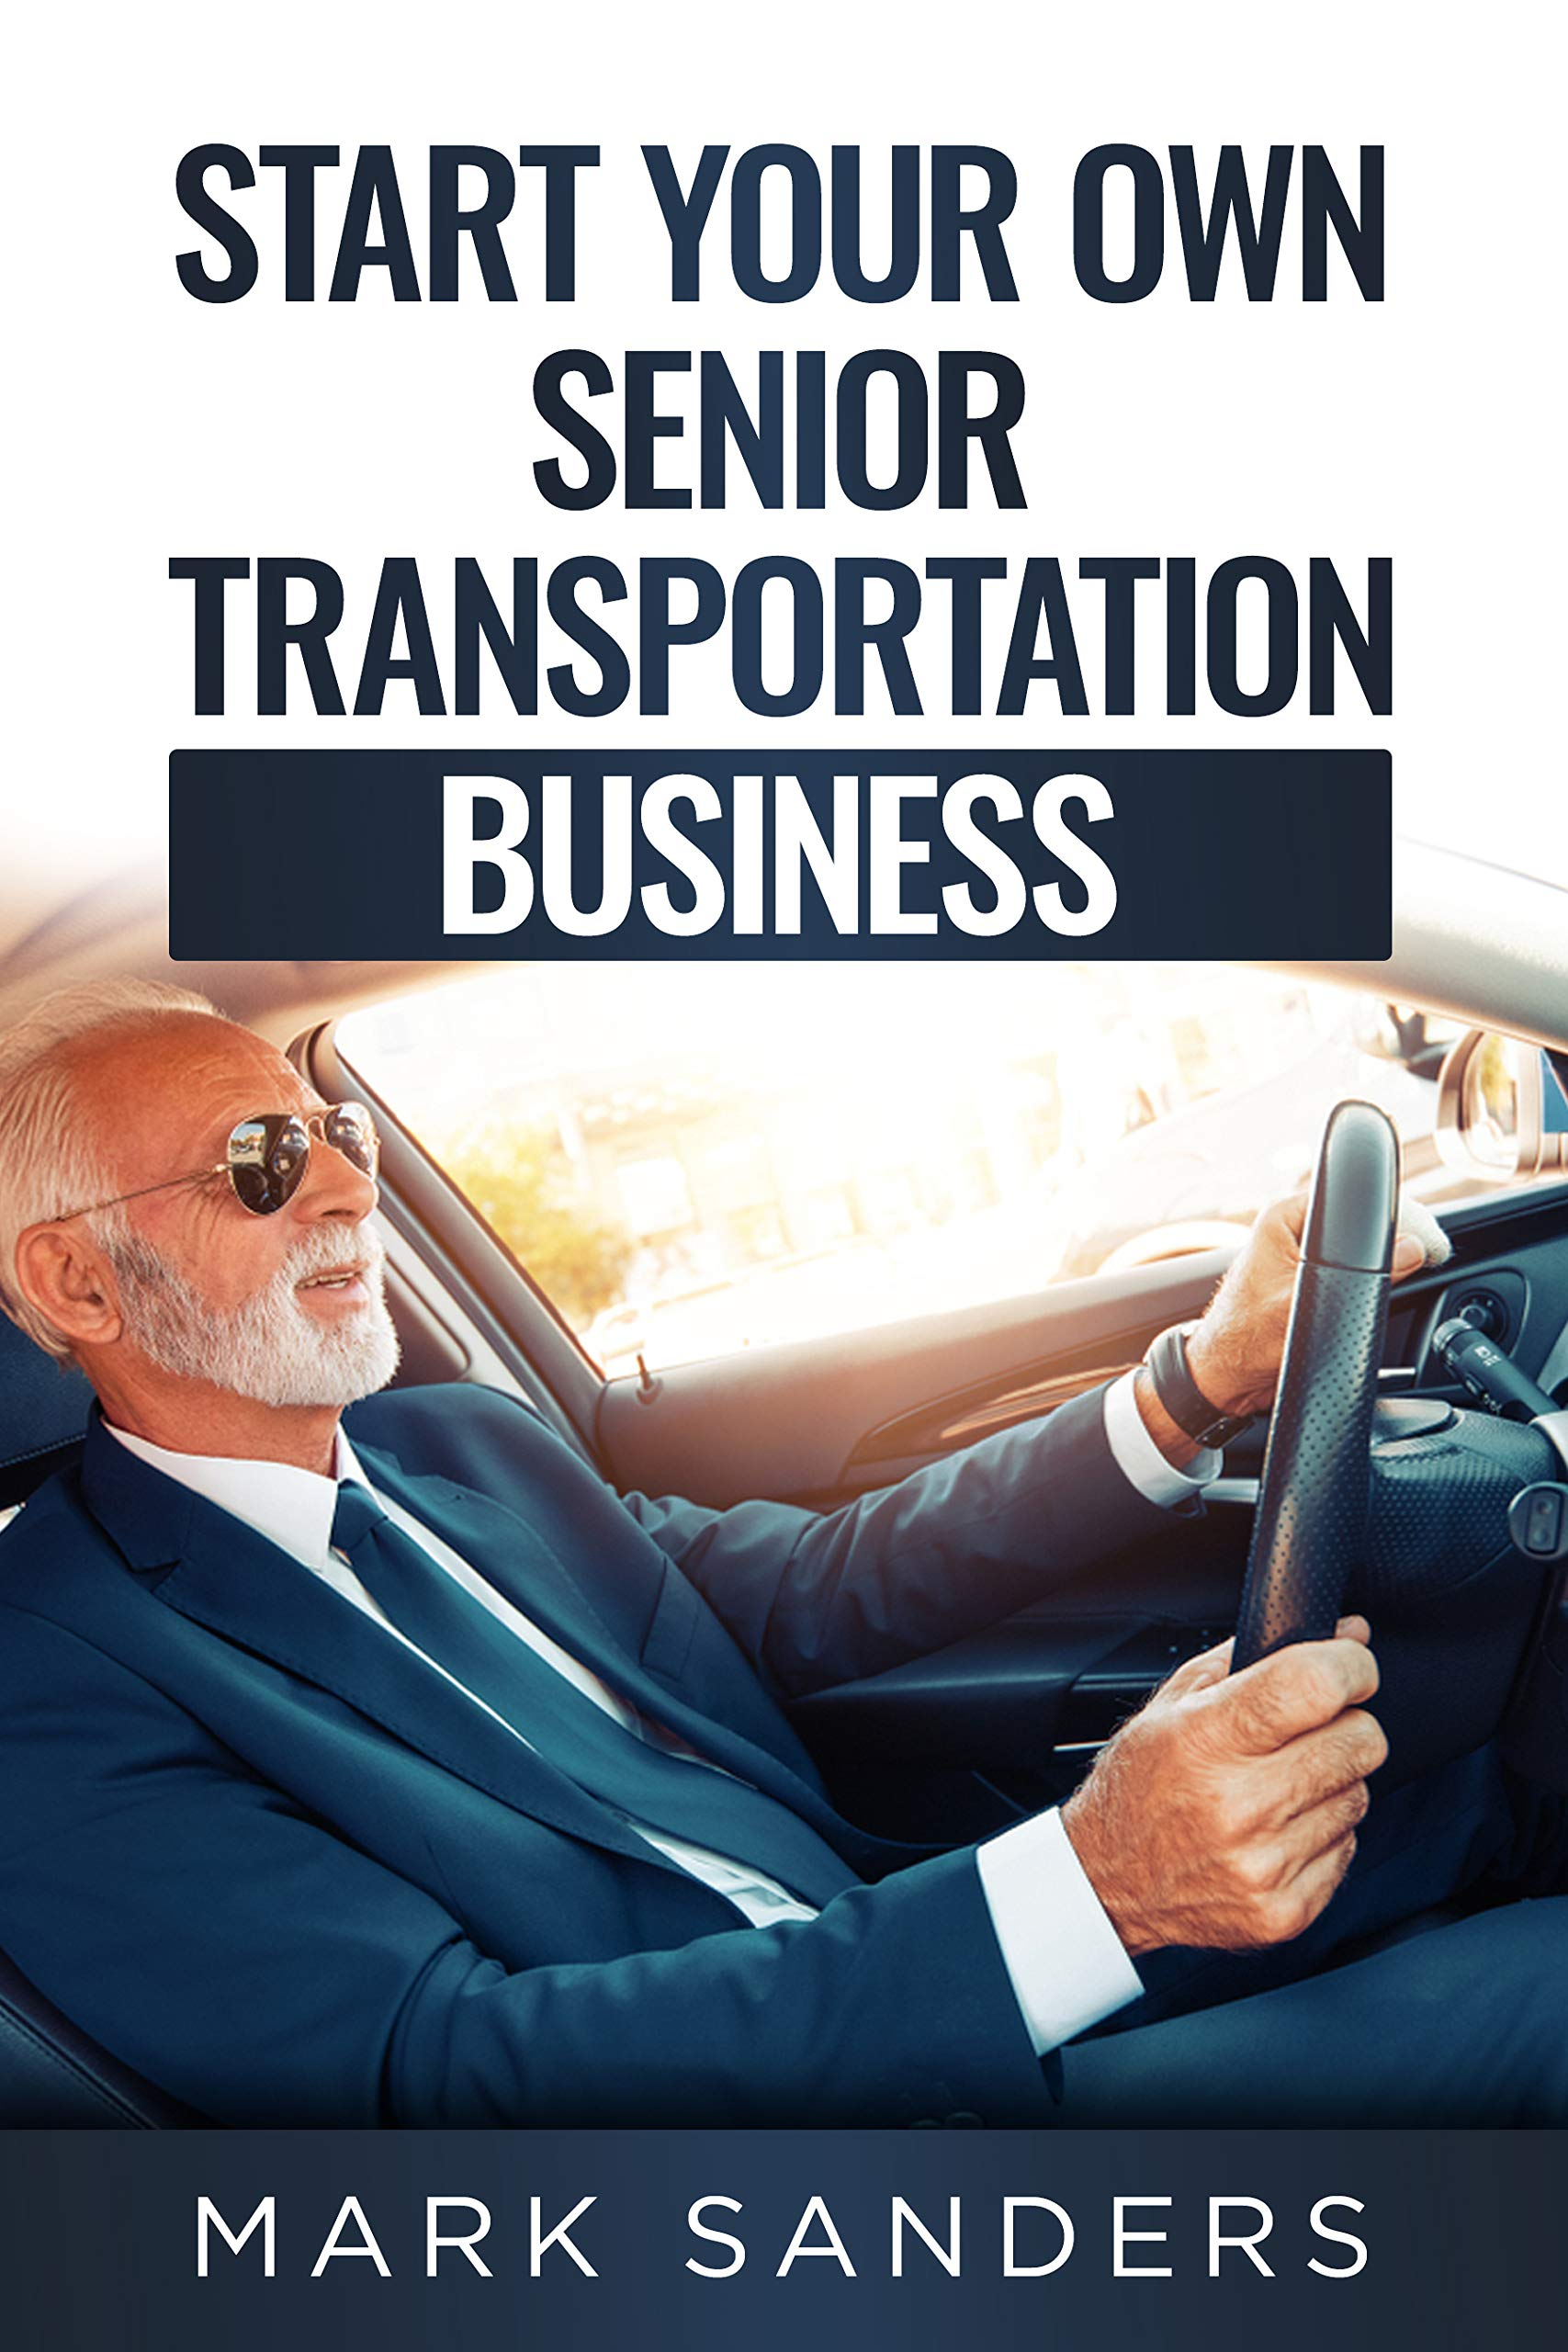 Start Your Own Senior Transportation Business : Discover how you can earn $35 to $60 an hour driving seniors to medical appointments